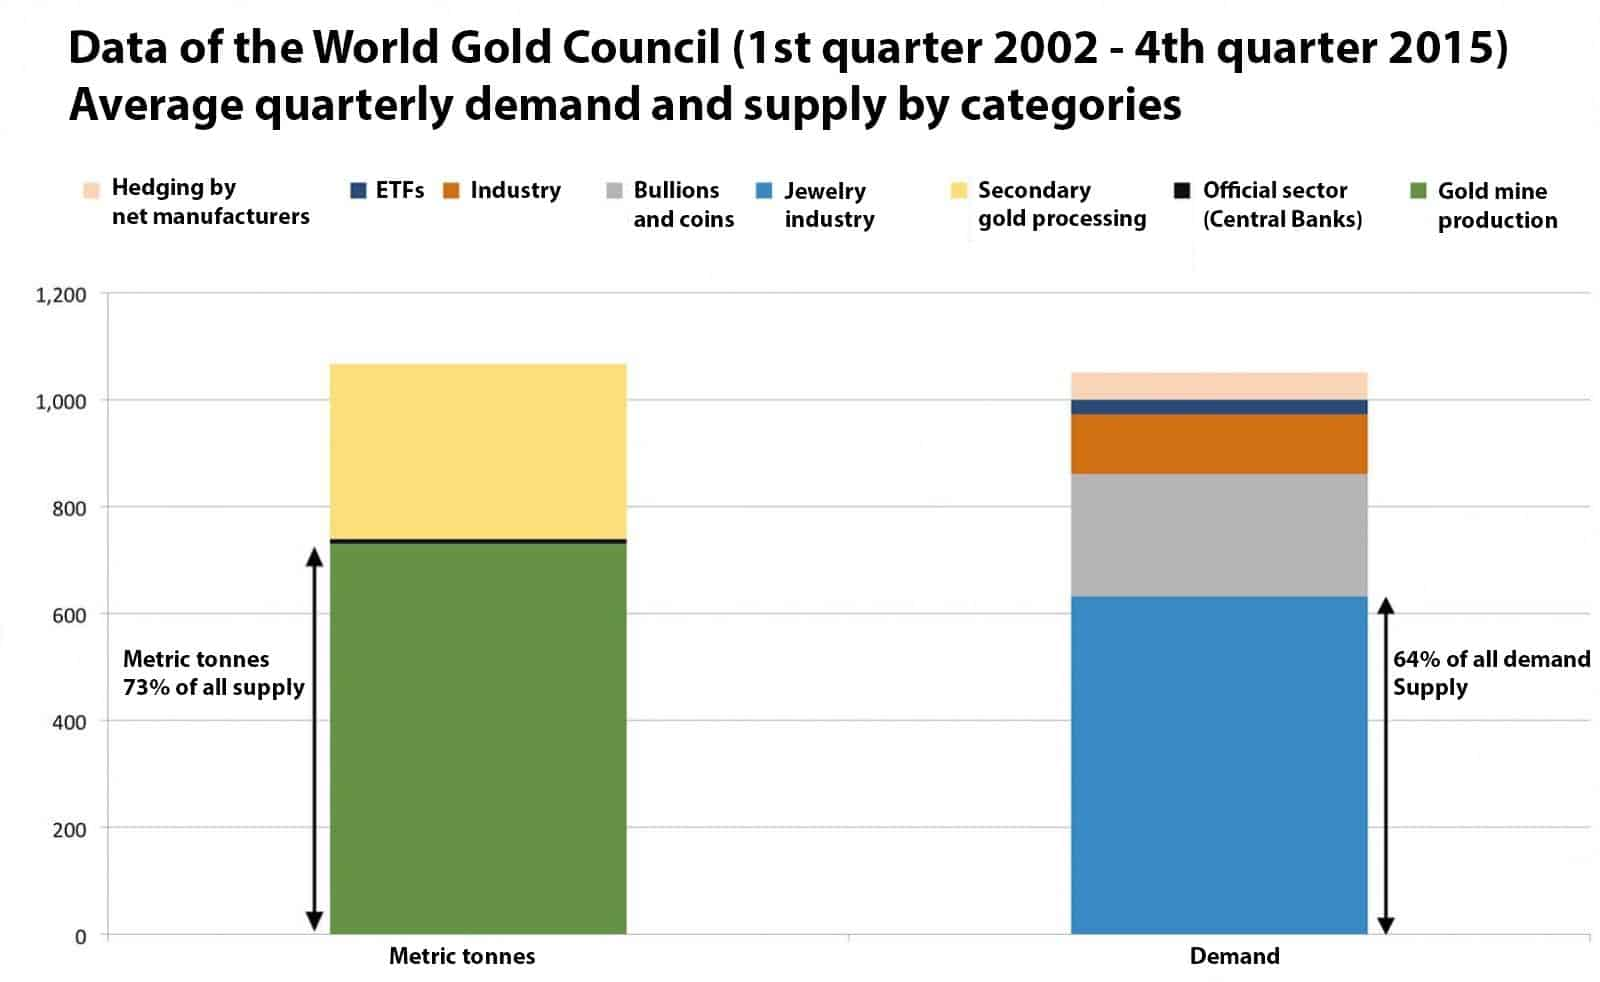 Data of the World Gold Council (1st quarter 2002 - 4th quarter 2015) Average quarterly demand and supply by categories